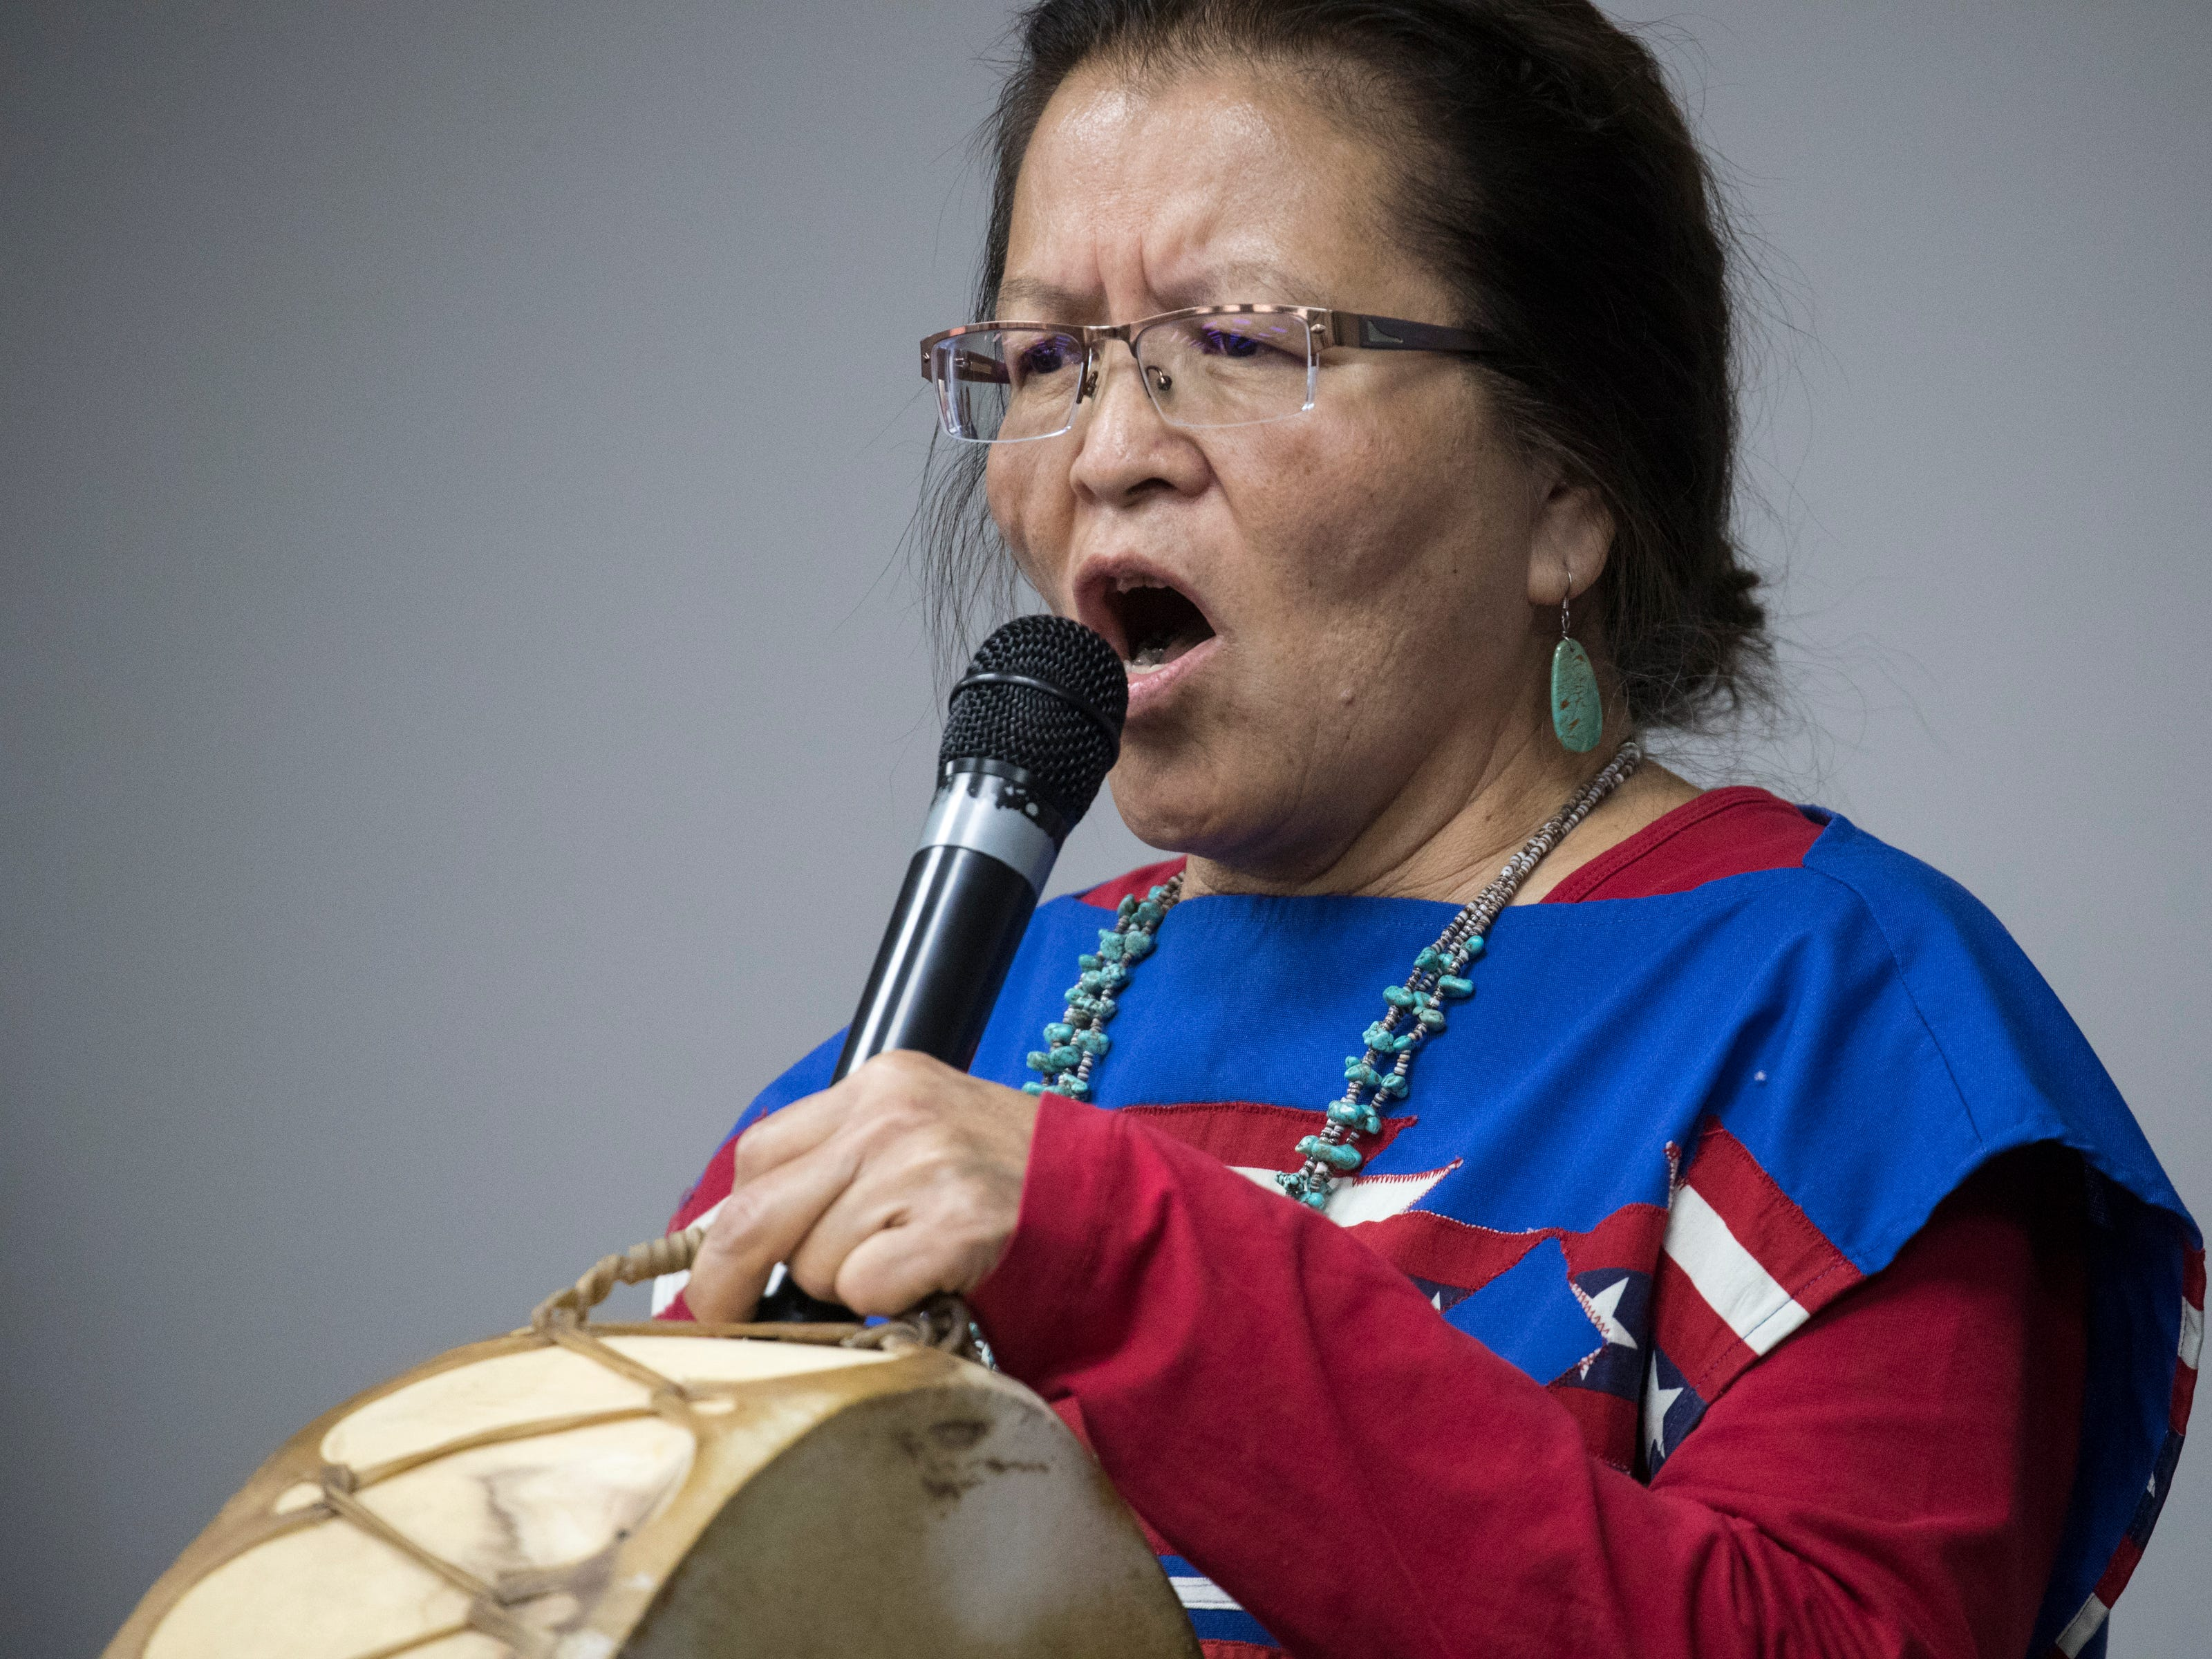 Julie Redhouse sings the National Anthem during the funeral service for Navajo Code Talker Fleming Begaye Sr. at the Potter's House Christian Center in Chinle, Ariz., on May 17, 2019.